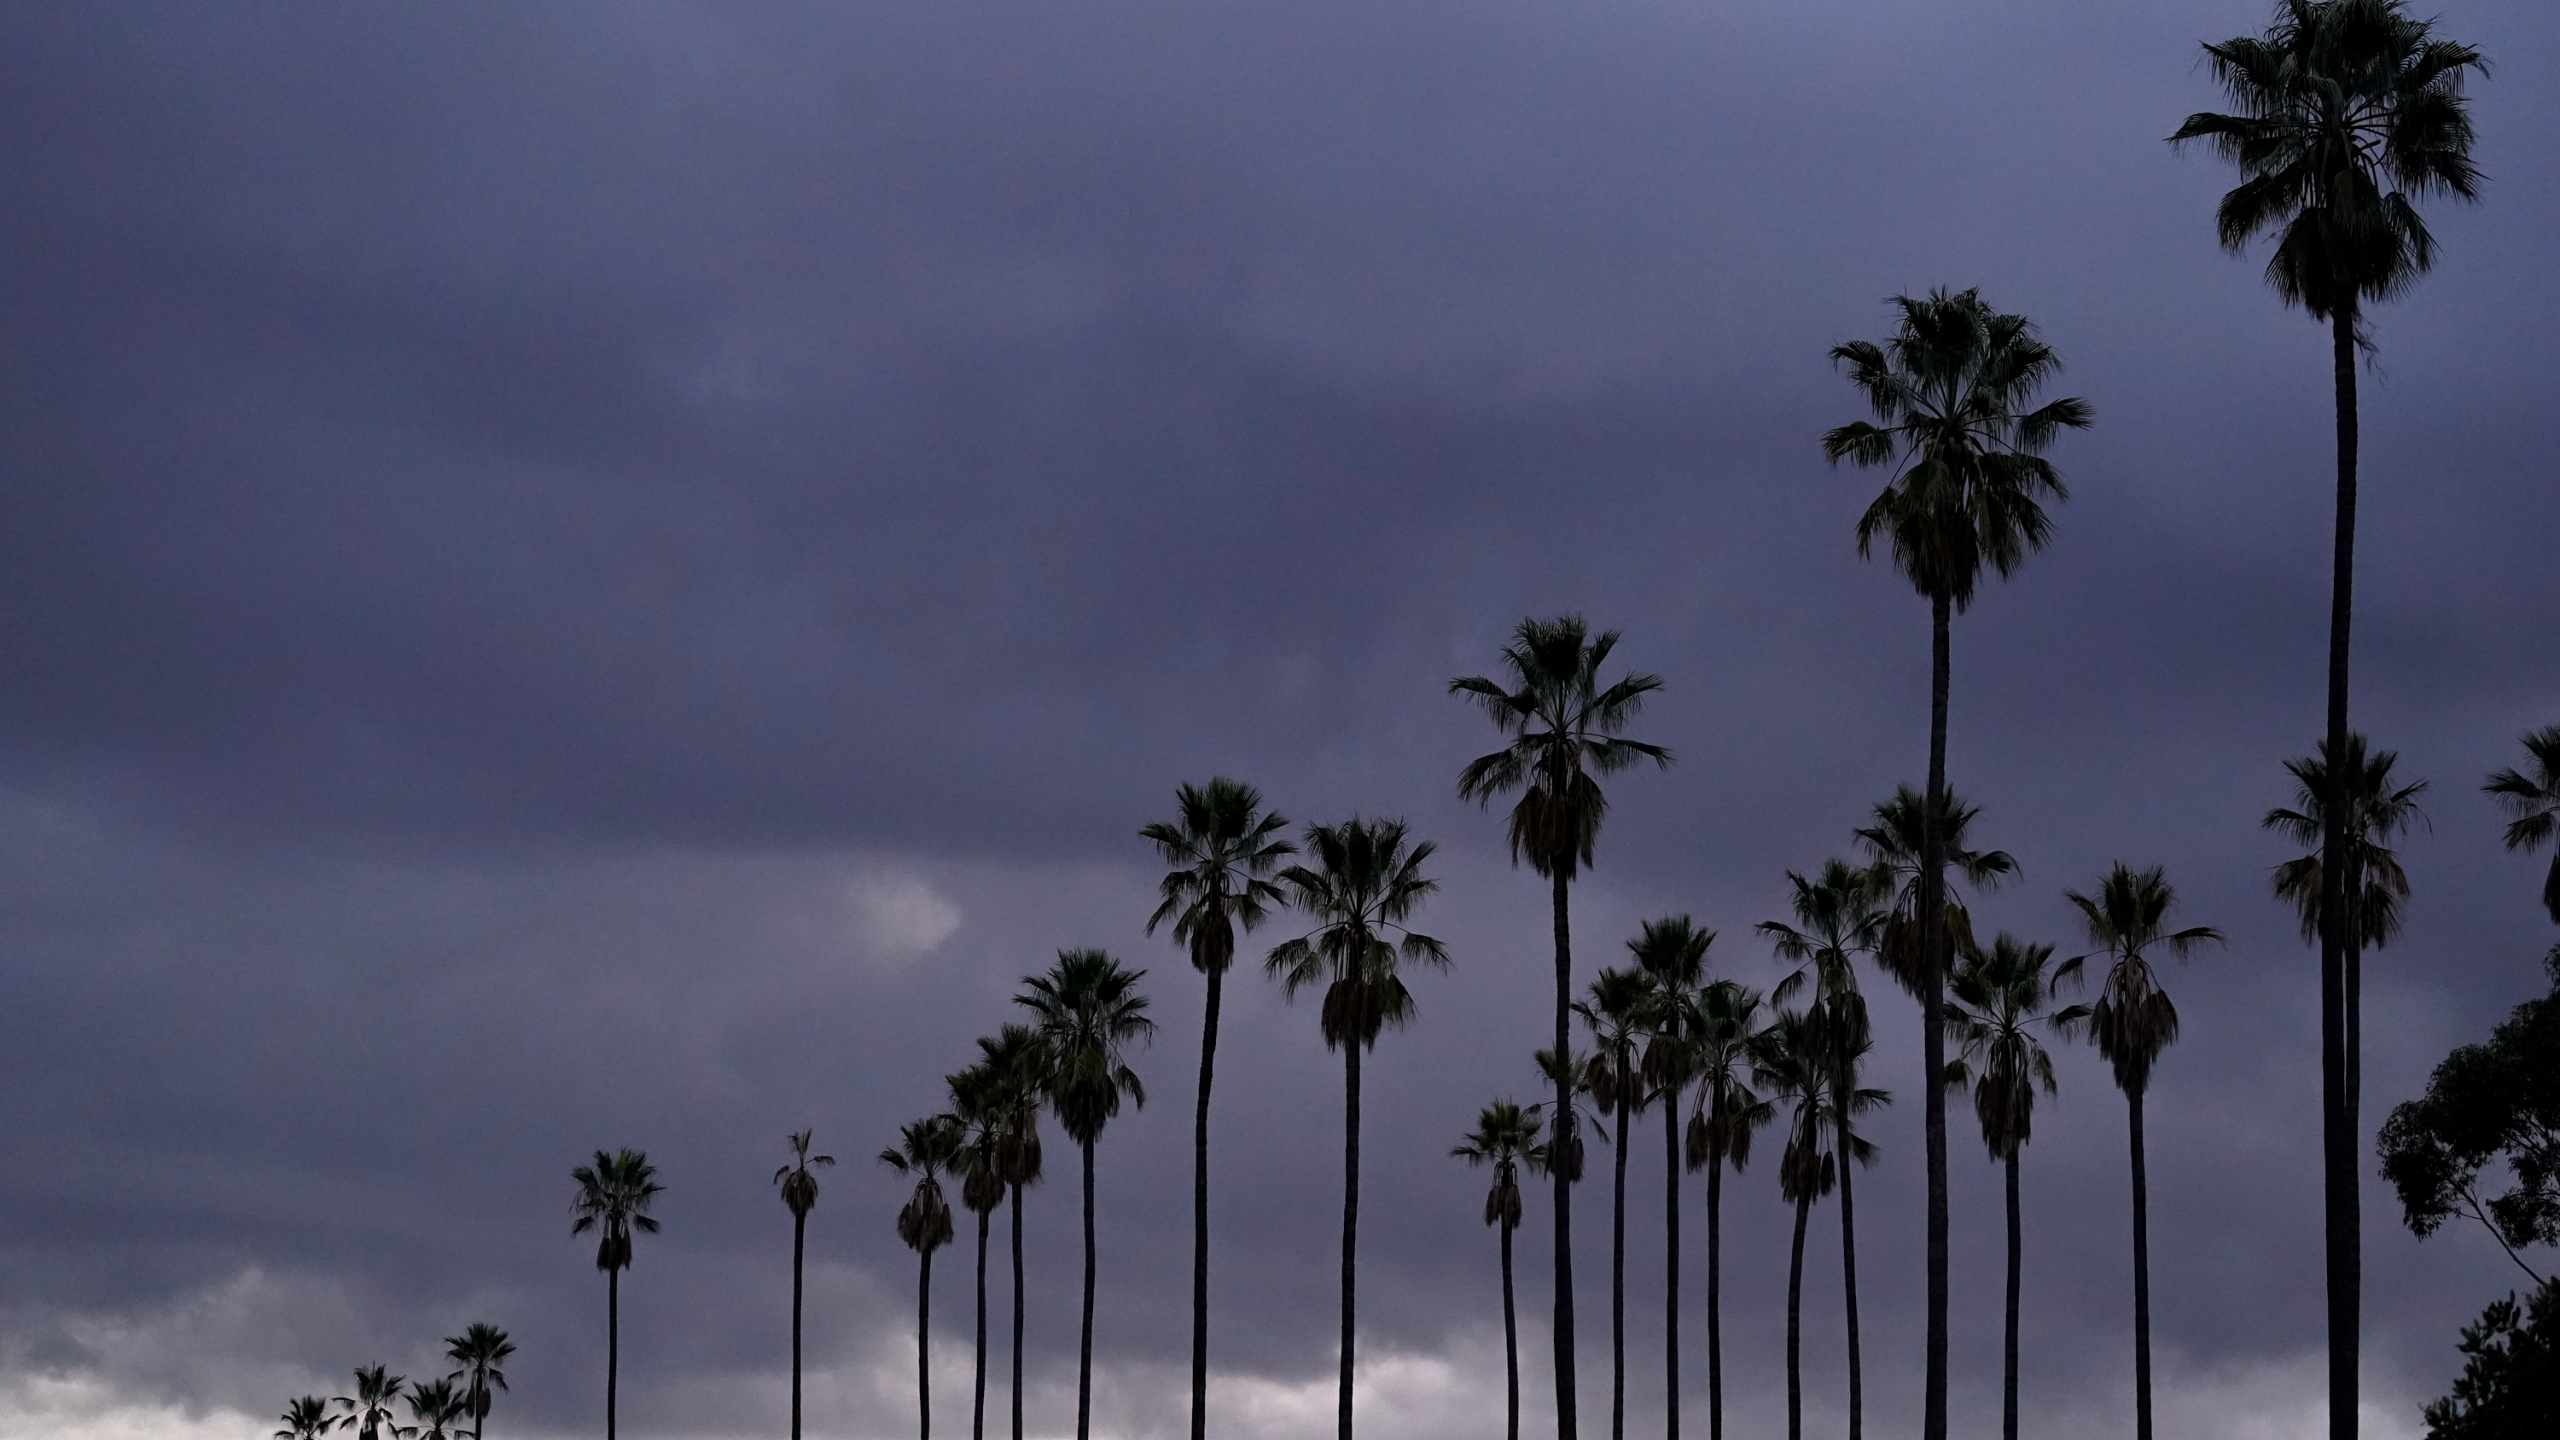 Clouds move over palm trees at Elysian Park in Los Angeles, Sunday, Jan. 24, 2021. (AP Photo/Damian Dovarganes)